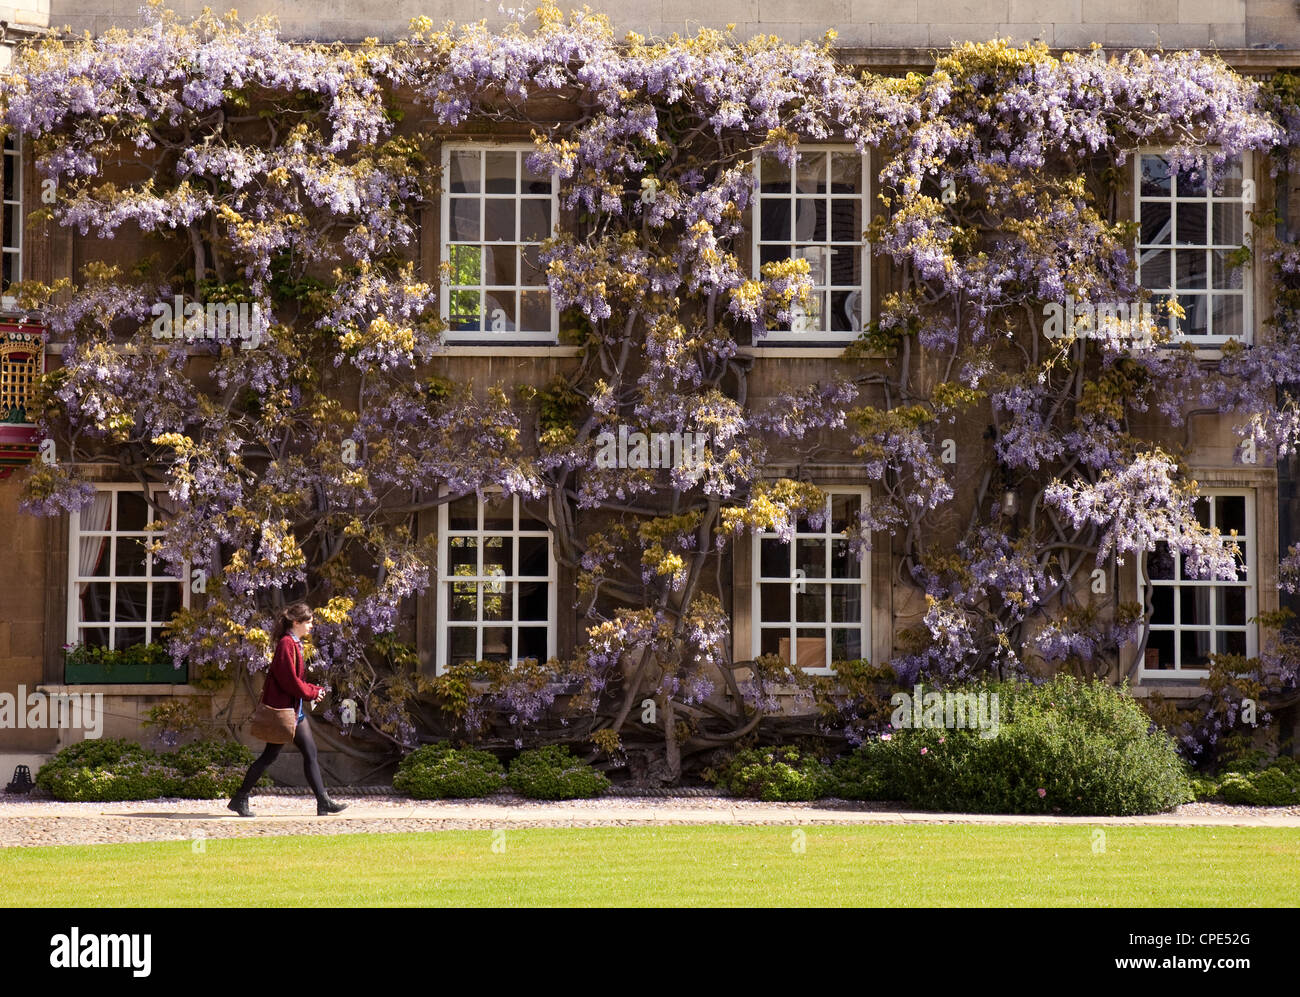 A student walking in Christs College Cambridge University in front of wisteria in spring, UK - Stock Image